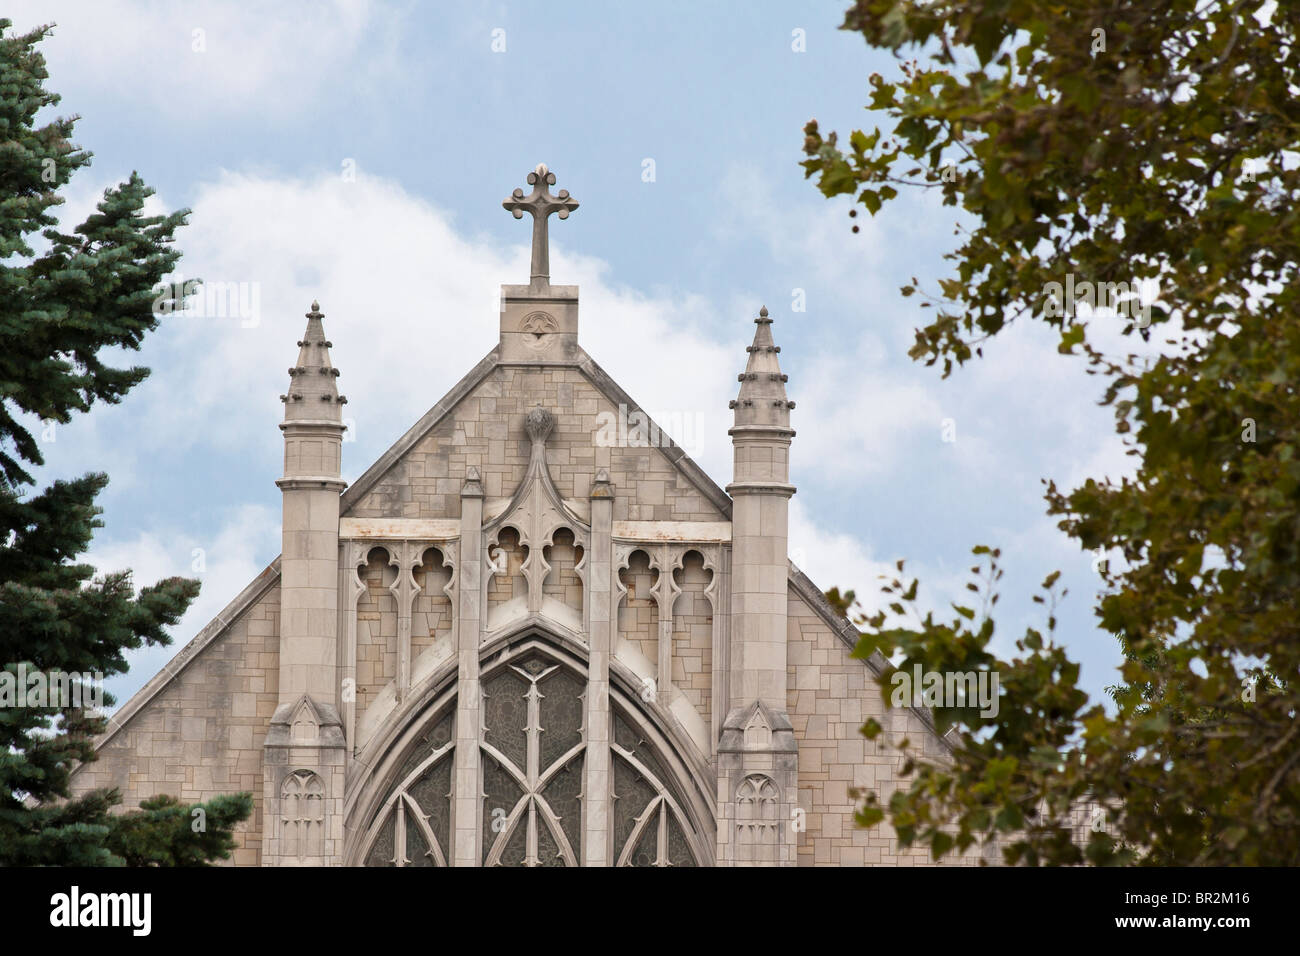 American first presbyterian church gothic style in city kalamazoo american first presbyterian church gothic style in city kalamazoo michigan mi usa nobody none not no people sciox Choice Image